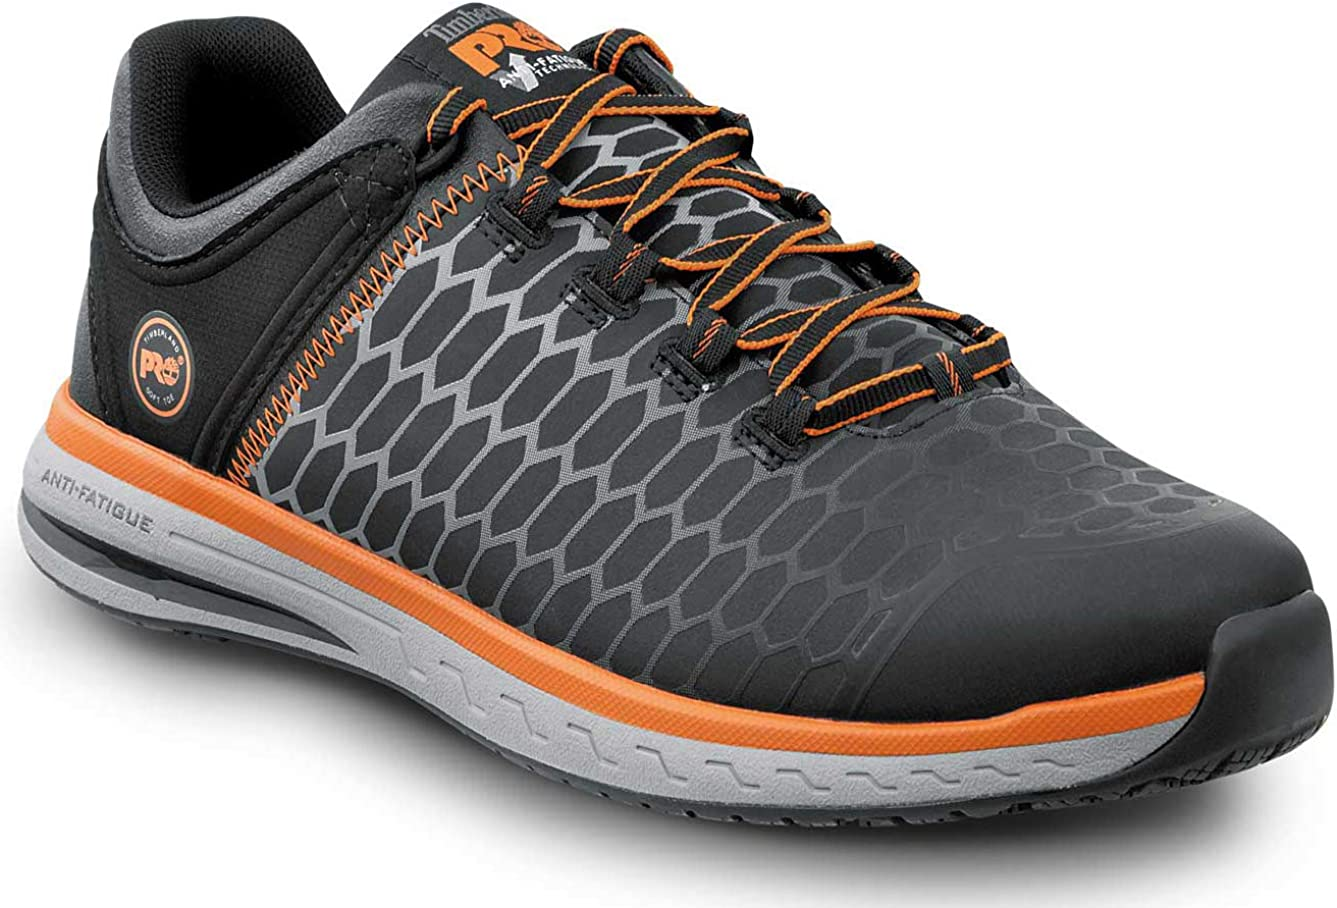 Timberland PRO Powerdrive, Men's, Soft Toe, EH, Low Athletic